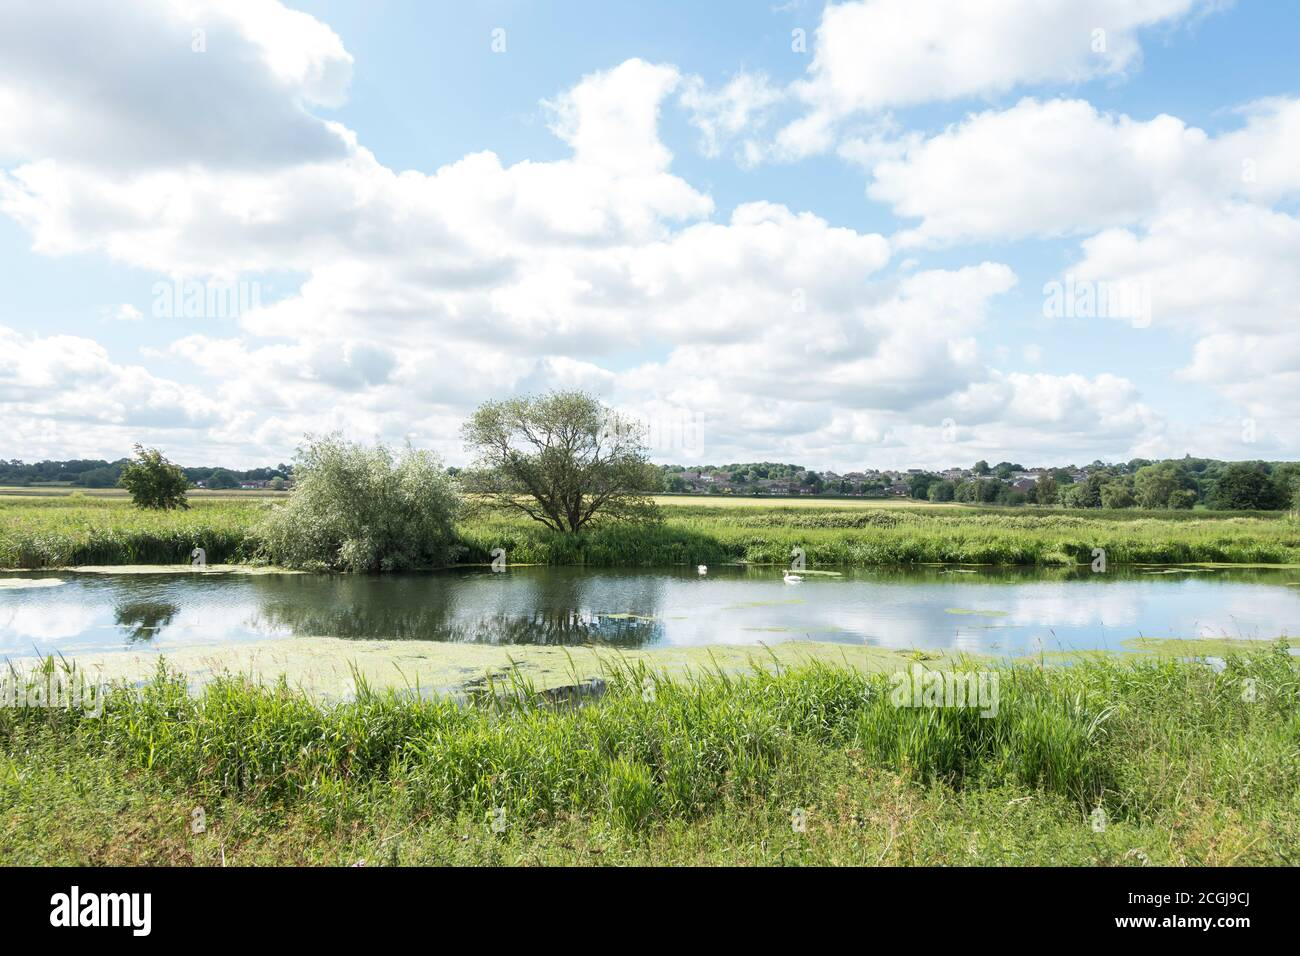 looking-over-river-witham-from-the-viking-way-towards-washingborough-lincolnshire-june-2020-2CGJ9CJ.jpg